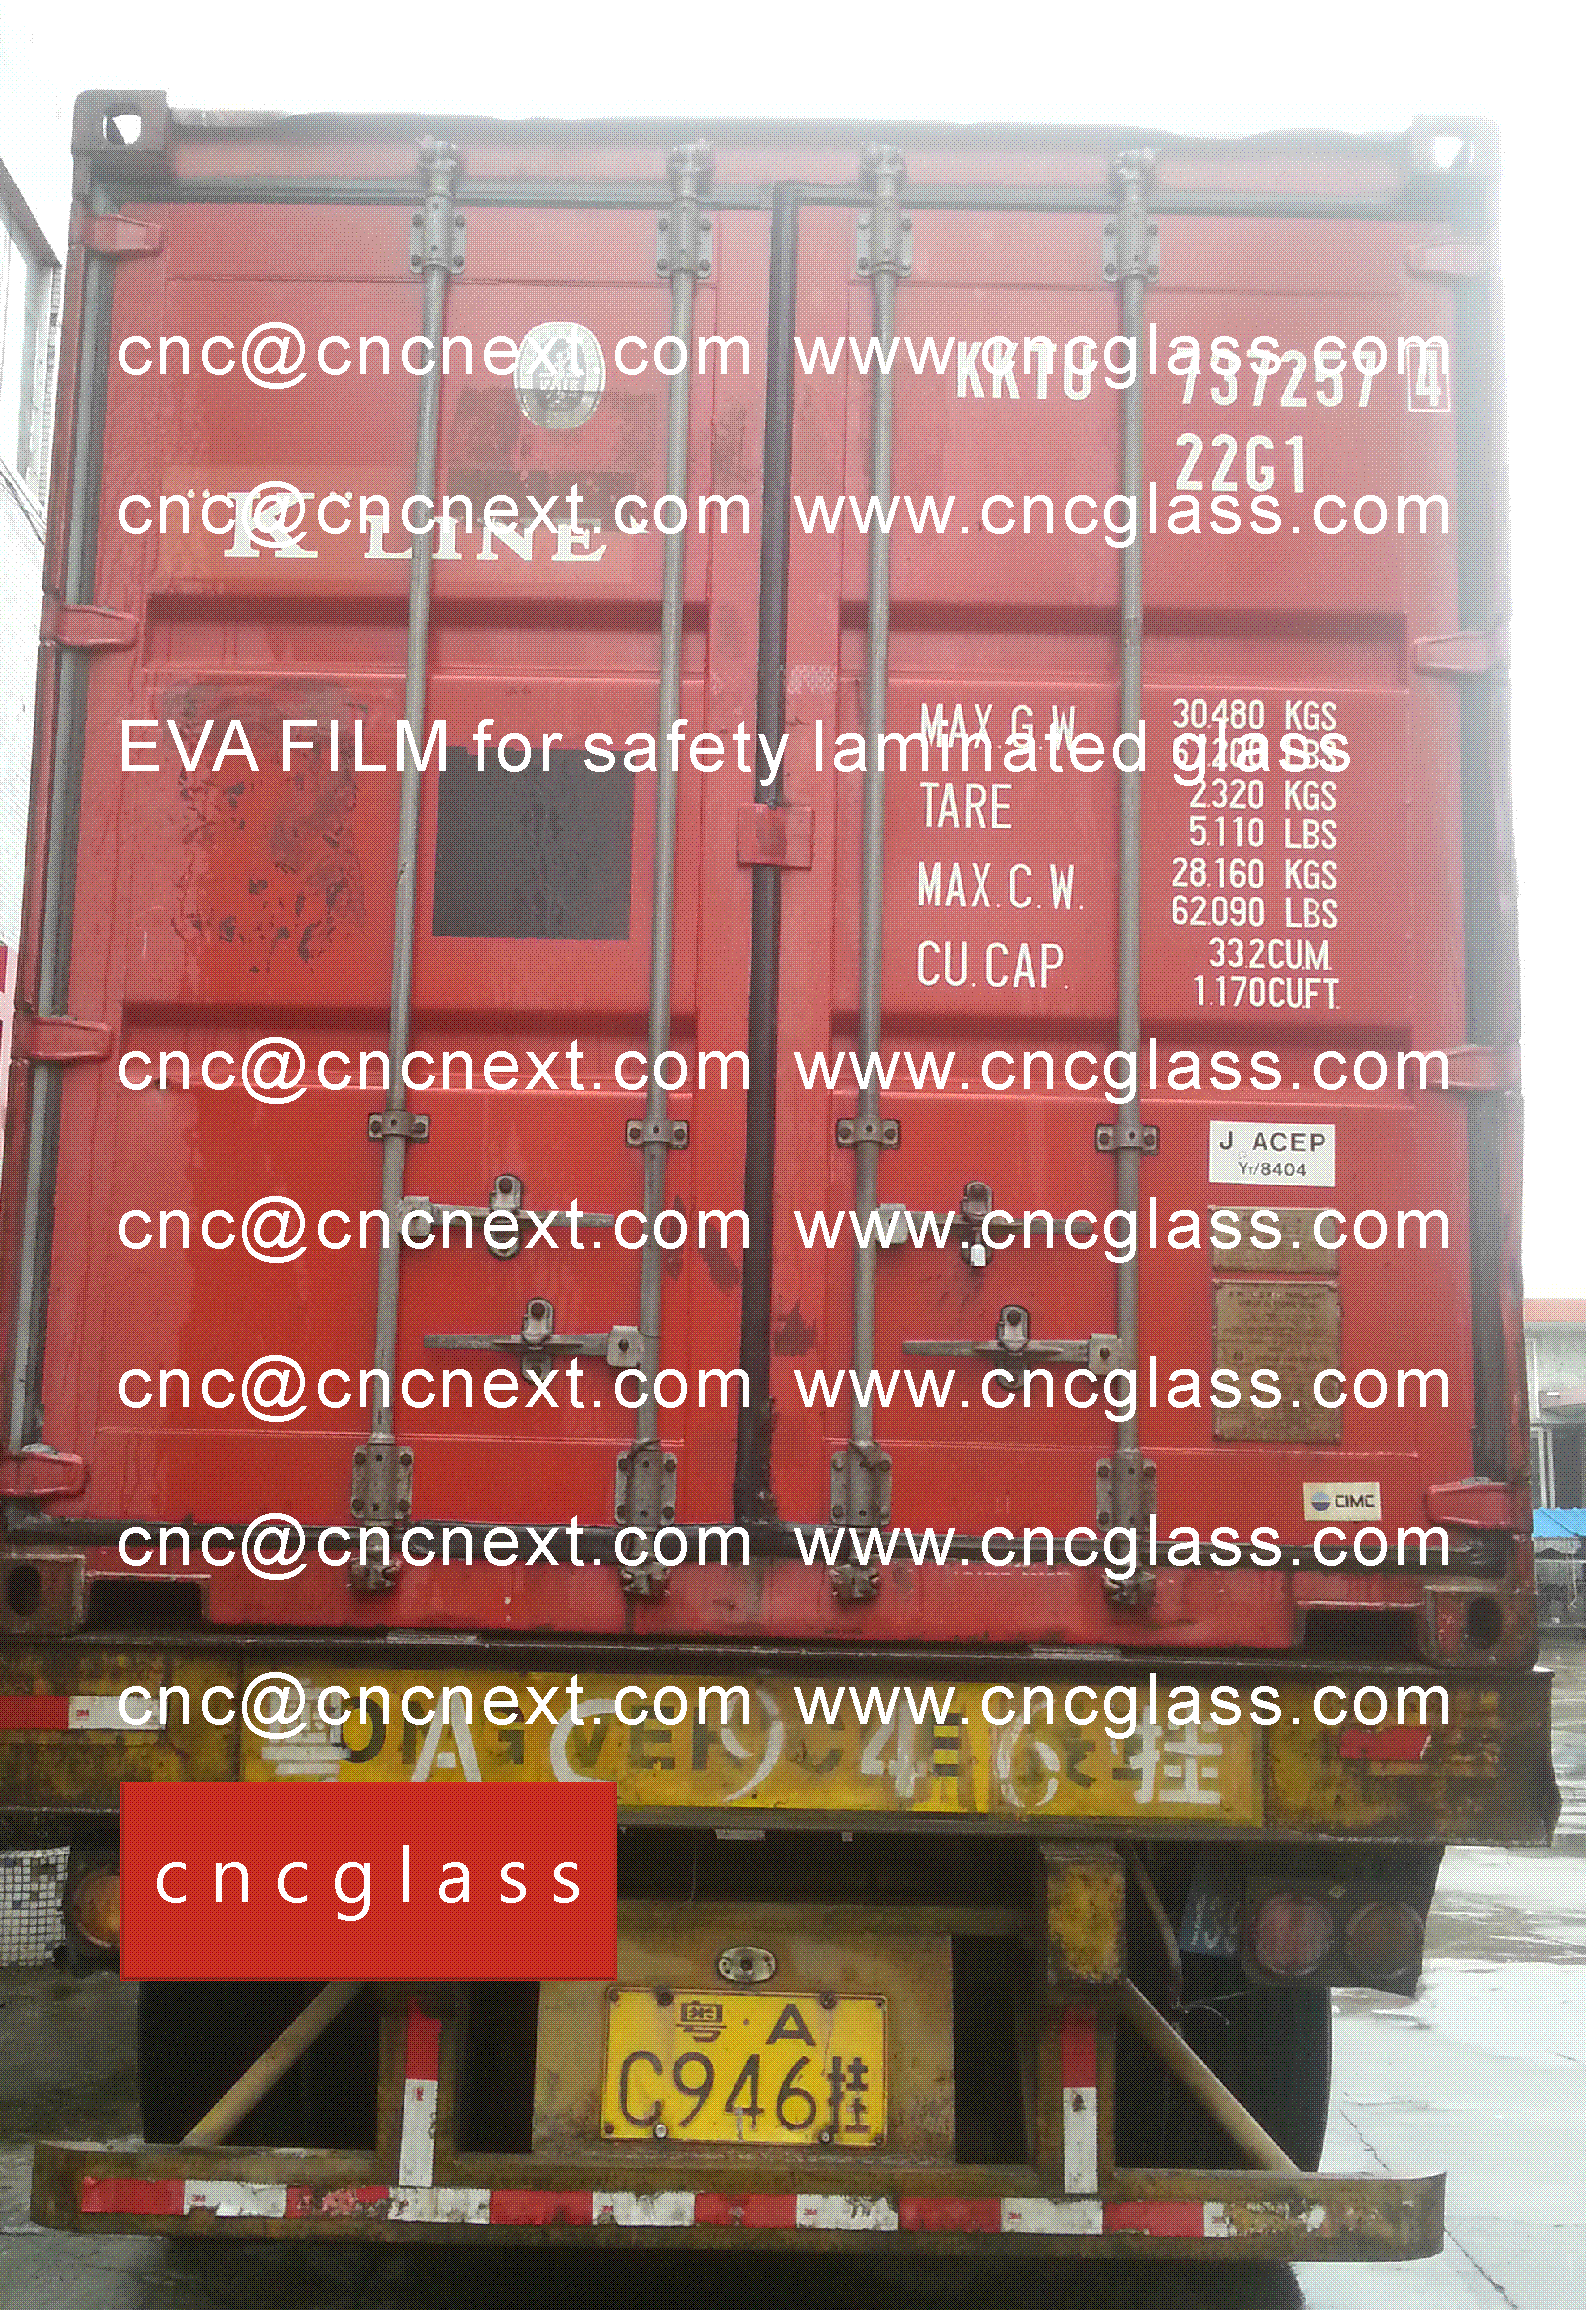 03 EVALAM INATING FILM LOADING CONTAINER (SAFETY LAMINATED GLASS)